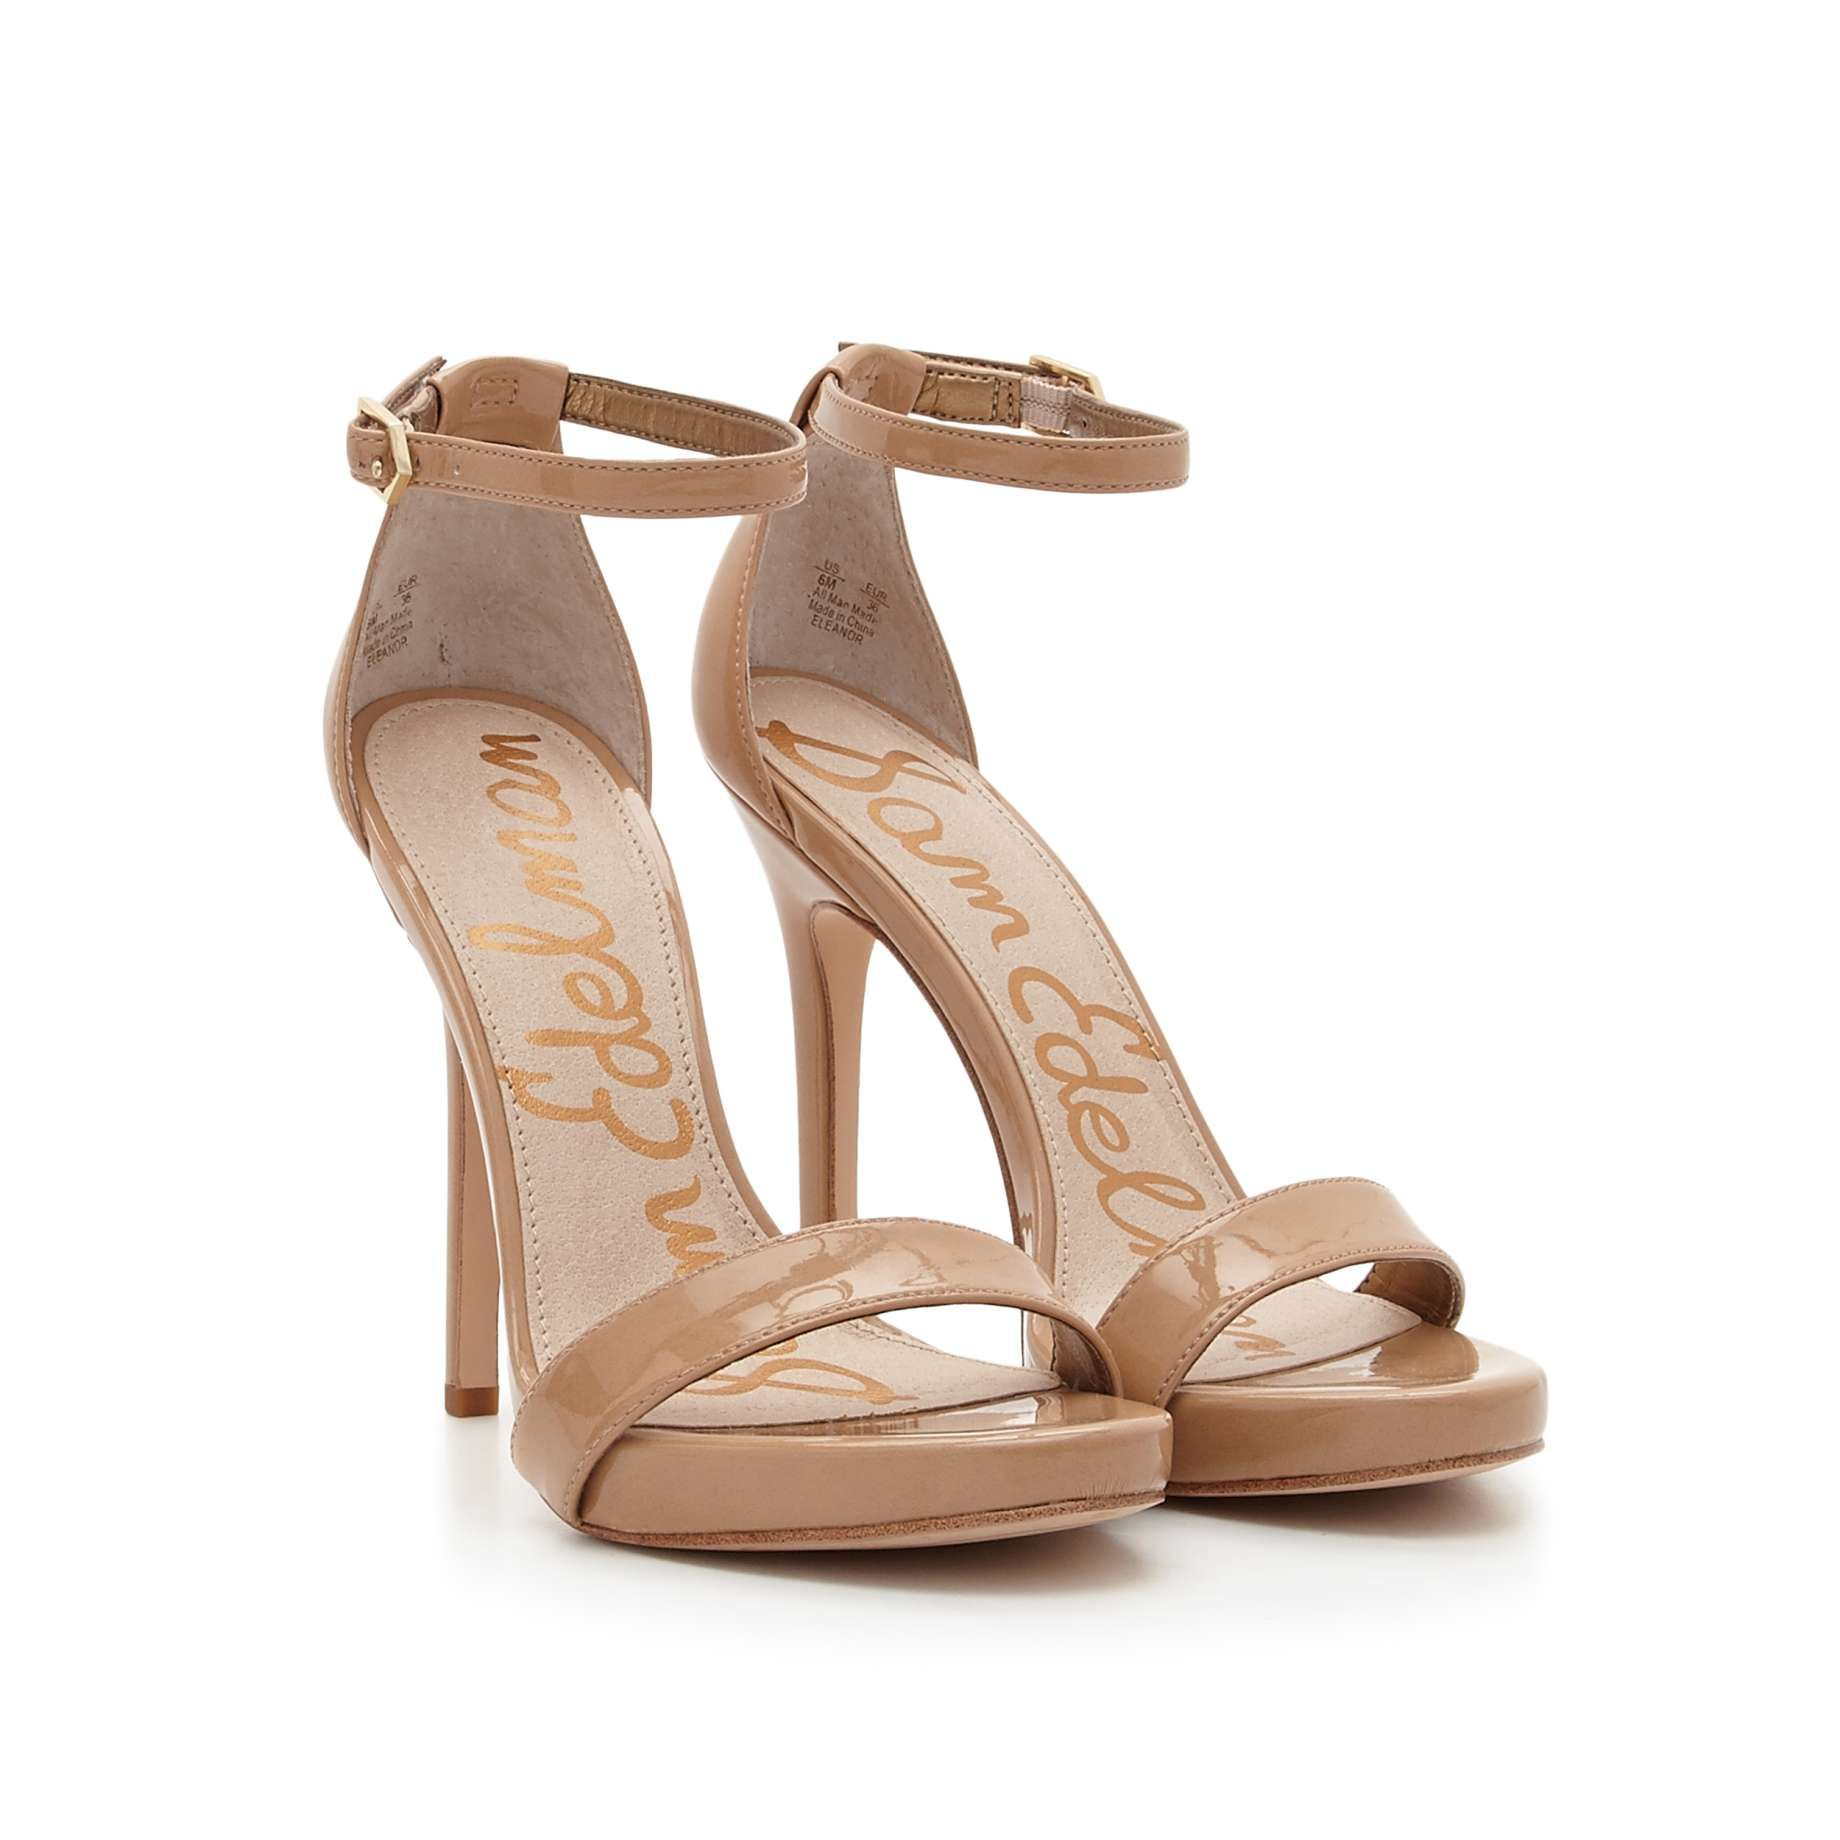 3d92e5c3aaa54 Eleanor Ankle Strap Sandal by Sam Edelman - Almond Patent - View 1 ...